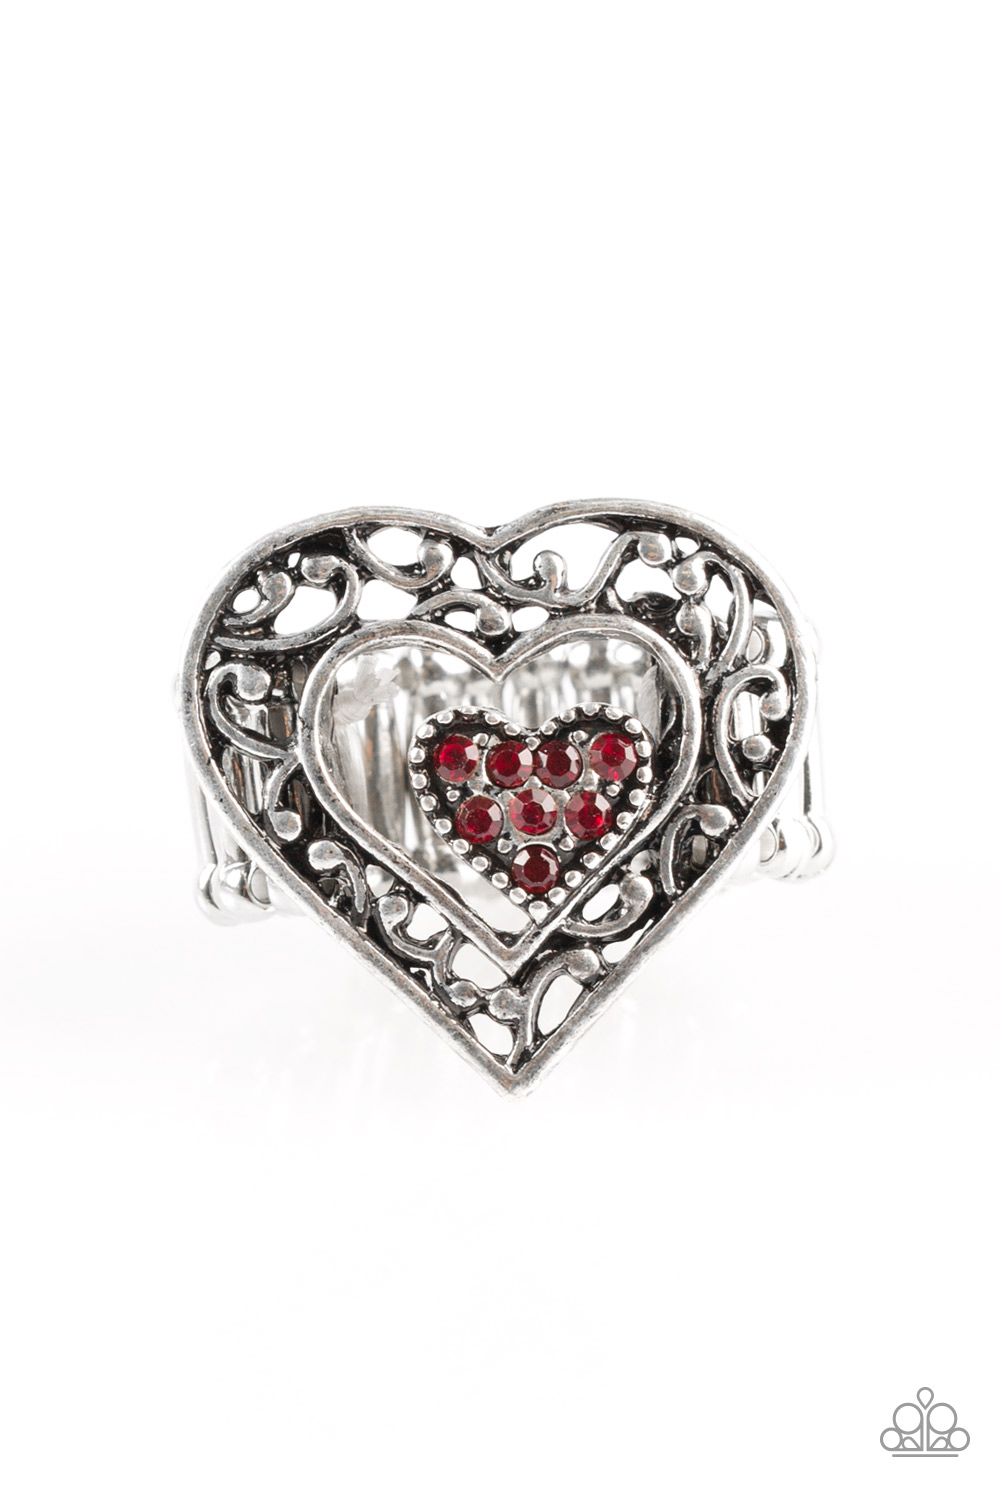 What A Heart Silver Ring Paparazzi